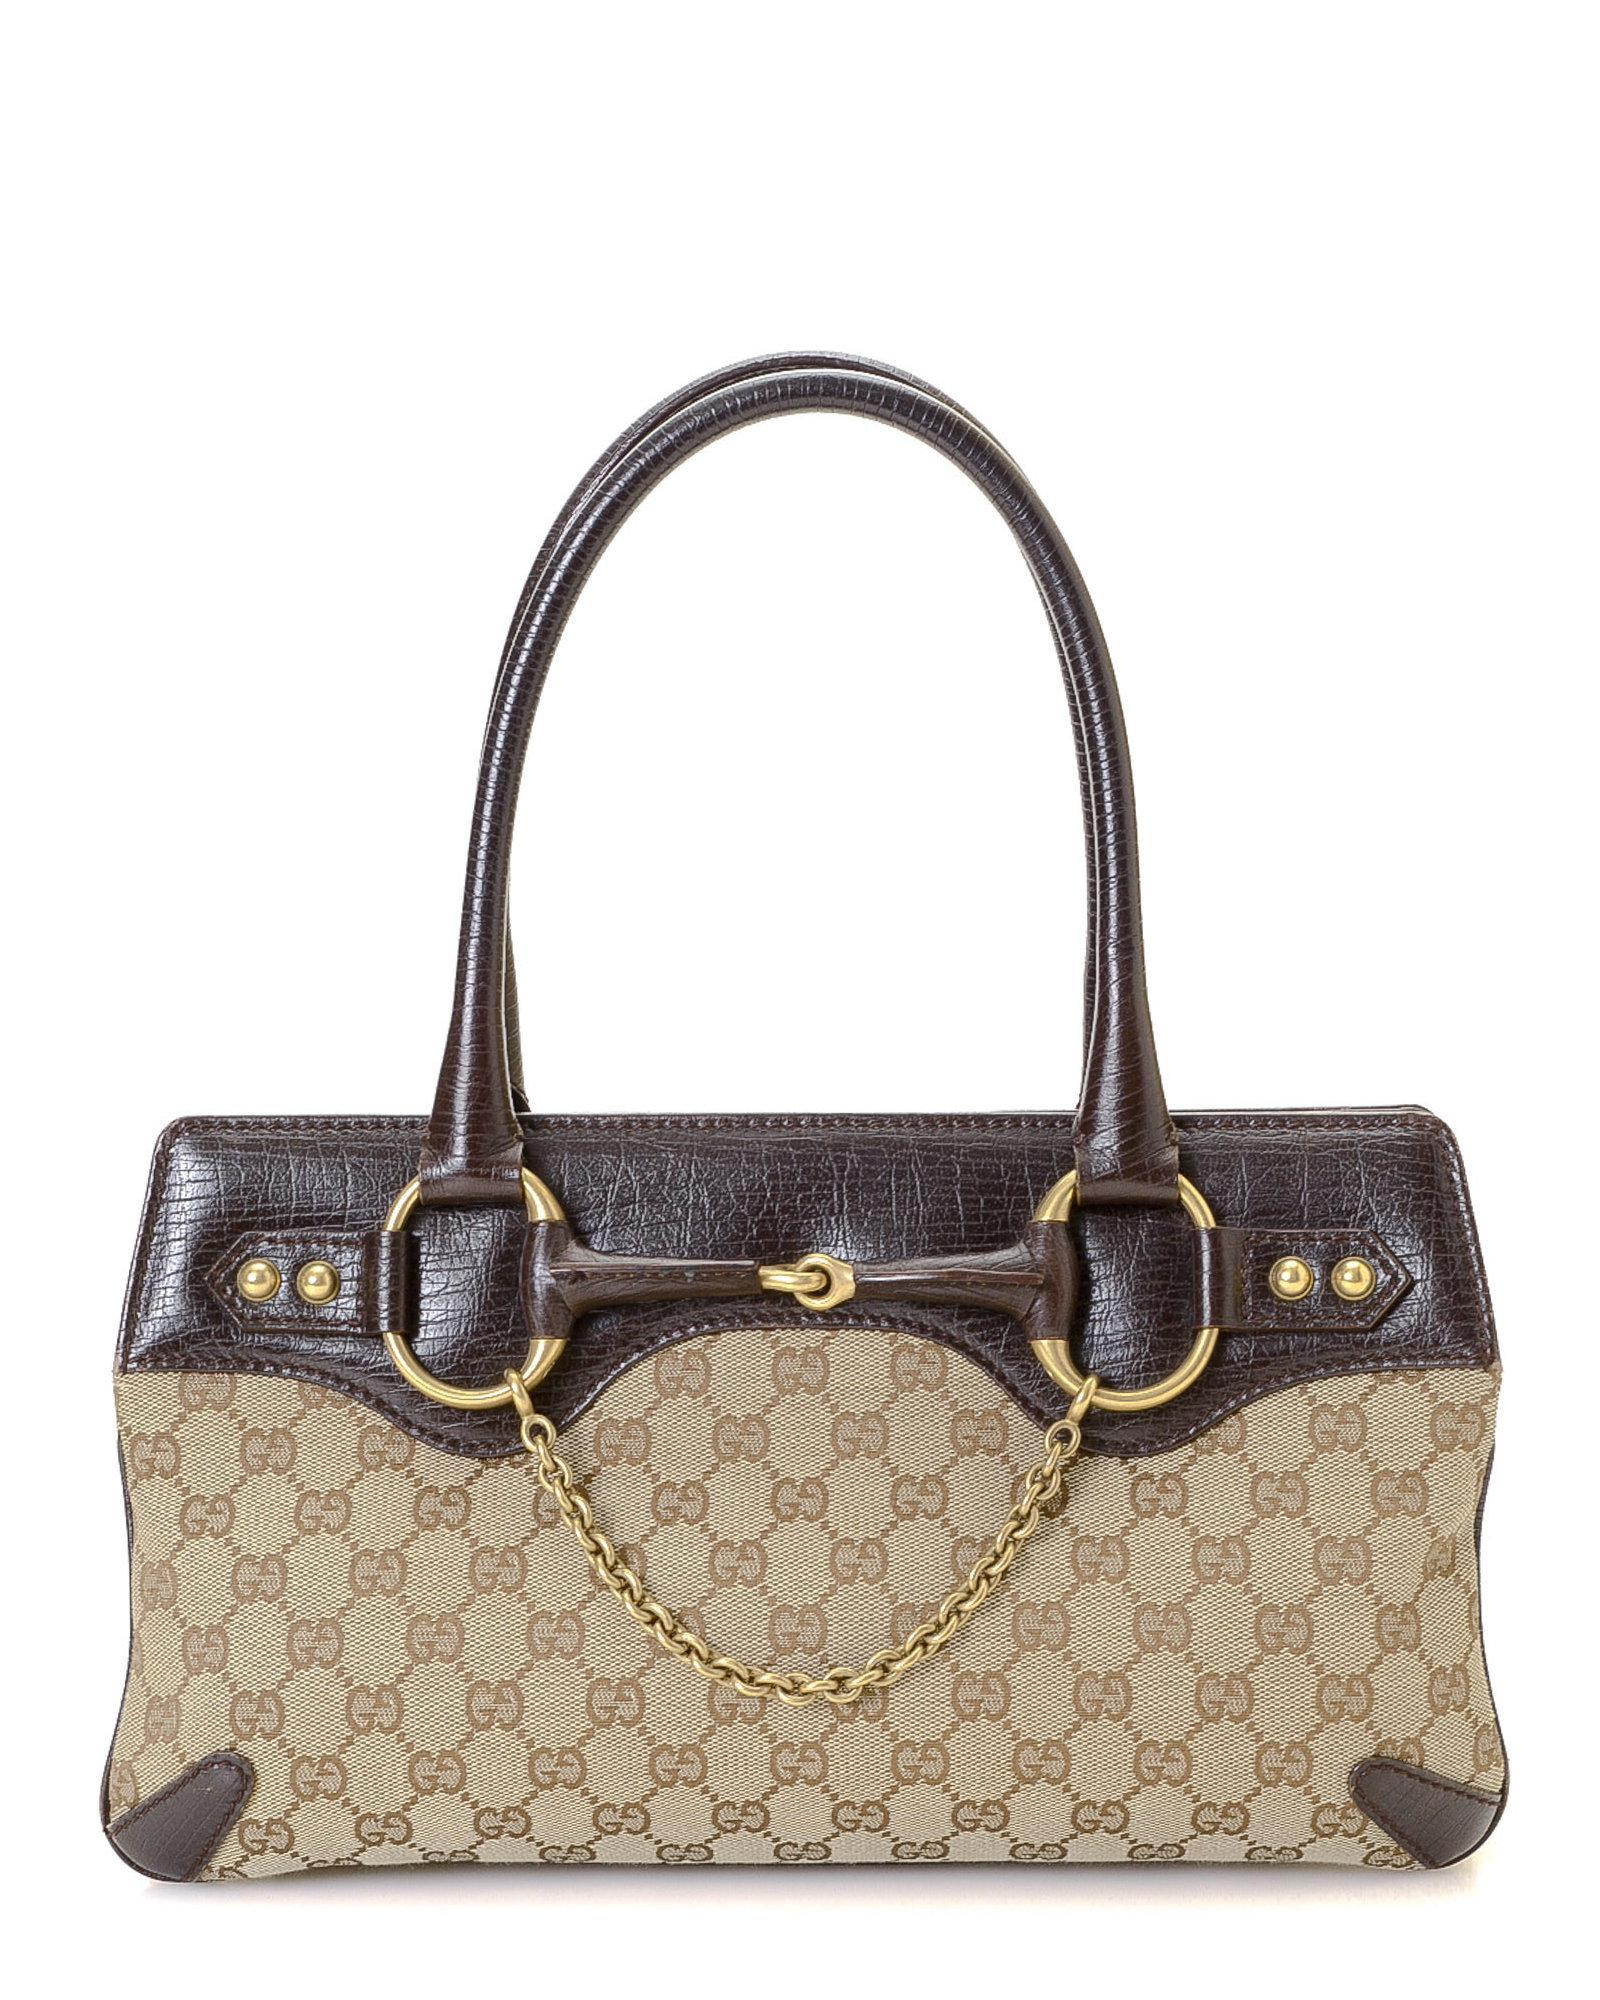 dcf745d36 Gucci GG Canvas Horsebit Handbag - Vintage in Natural - Lyst